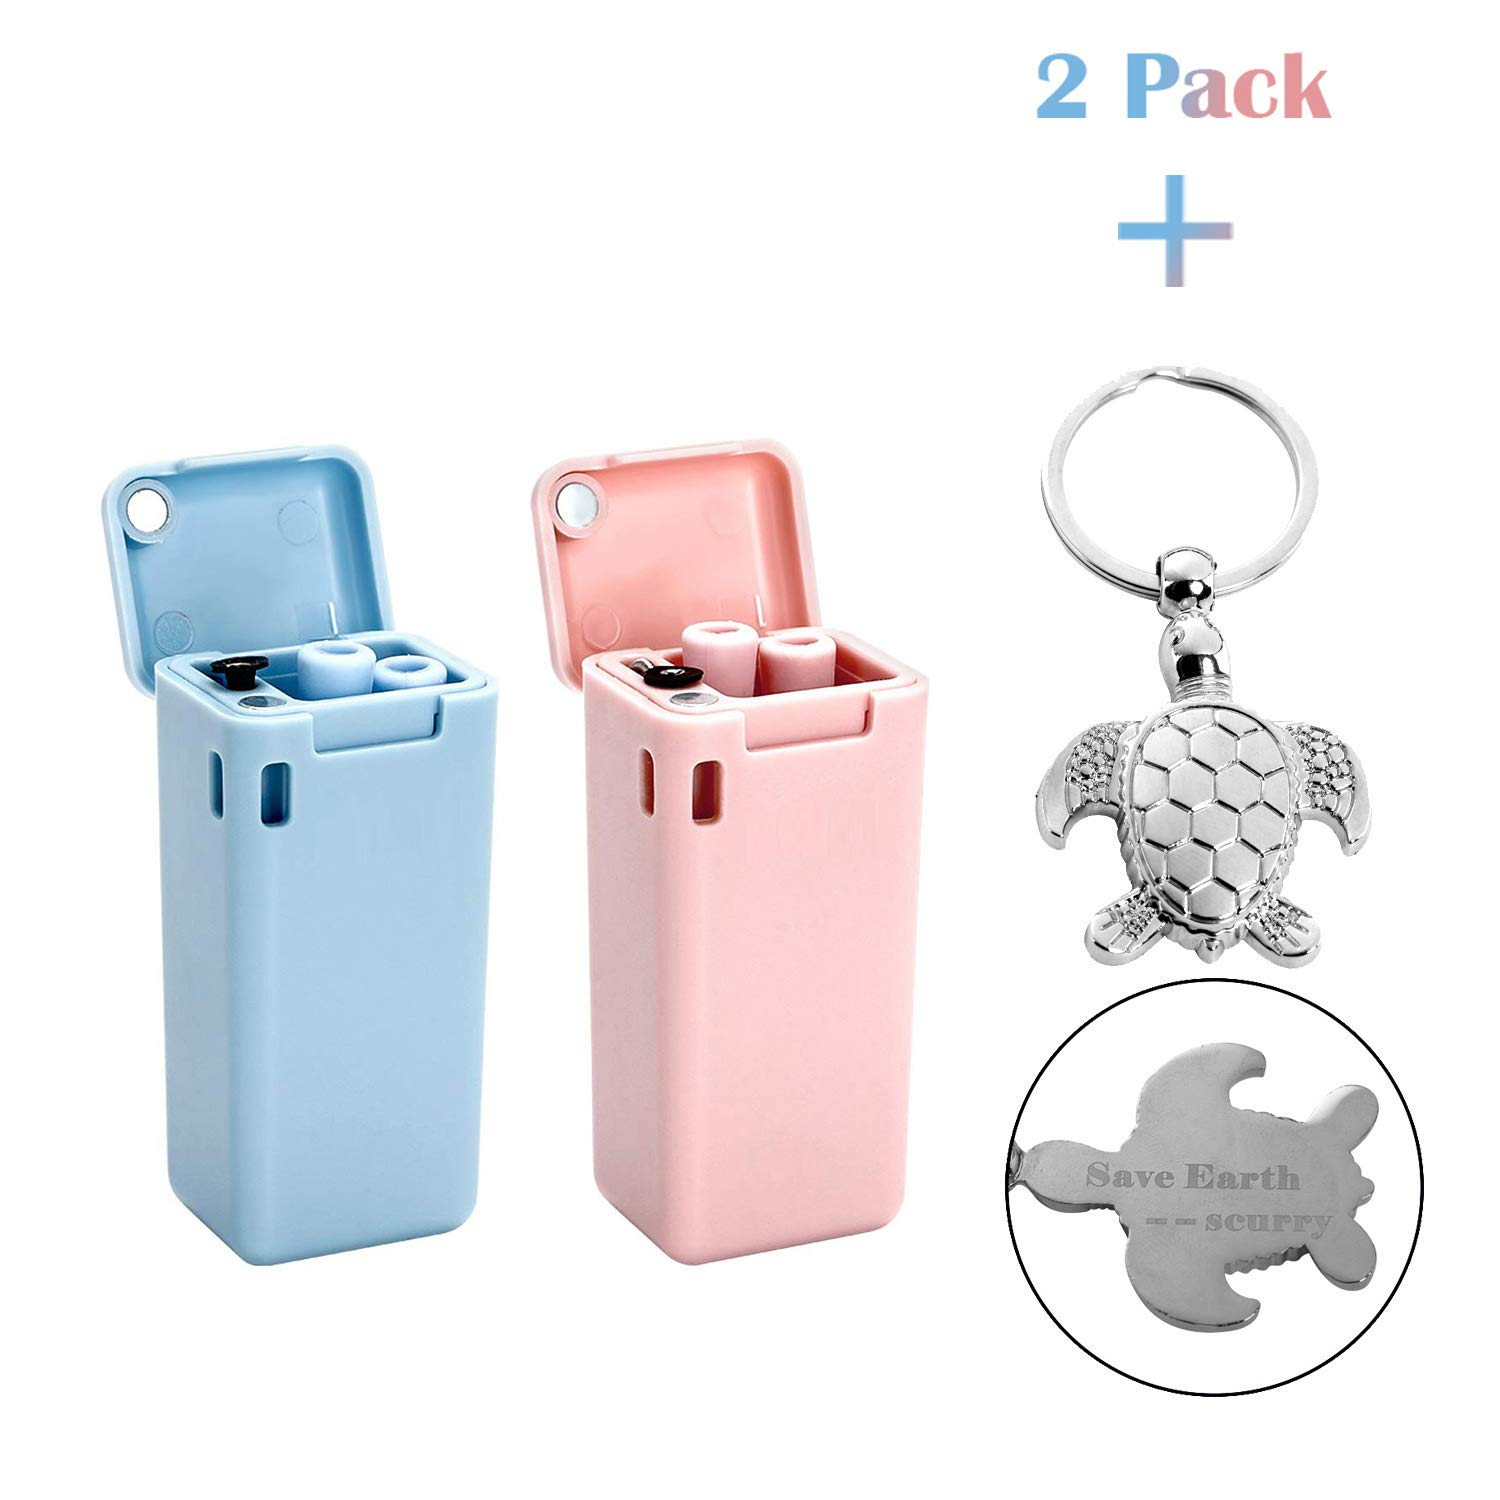 Reusable Straw Metal Straw Save the Turtles Straw Metal Straws With Case Portable Straw Stainless Steel Folding Drinking Straws, 2 Pack (Pink & Blue) by MMIO